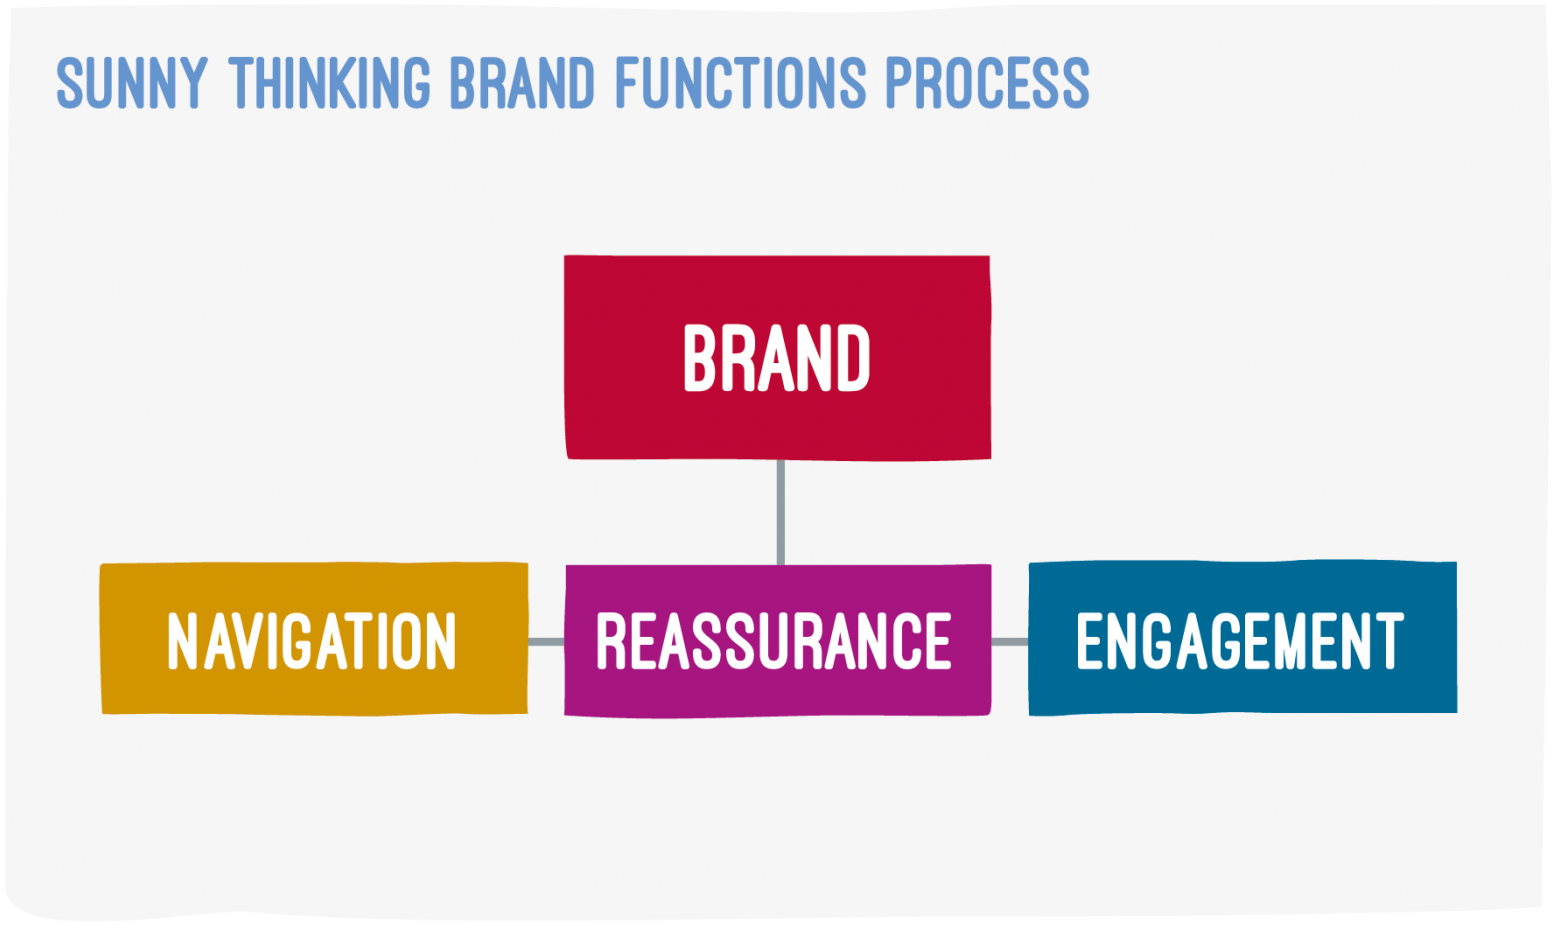 ST Brand Functions Diagram V1 01